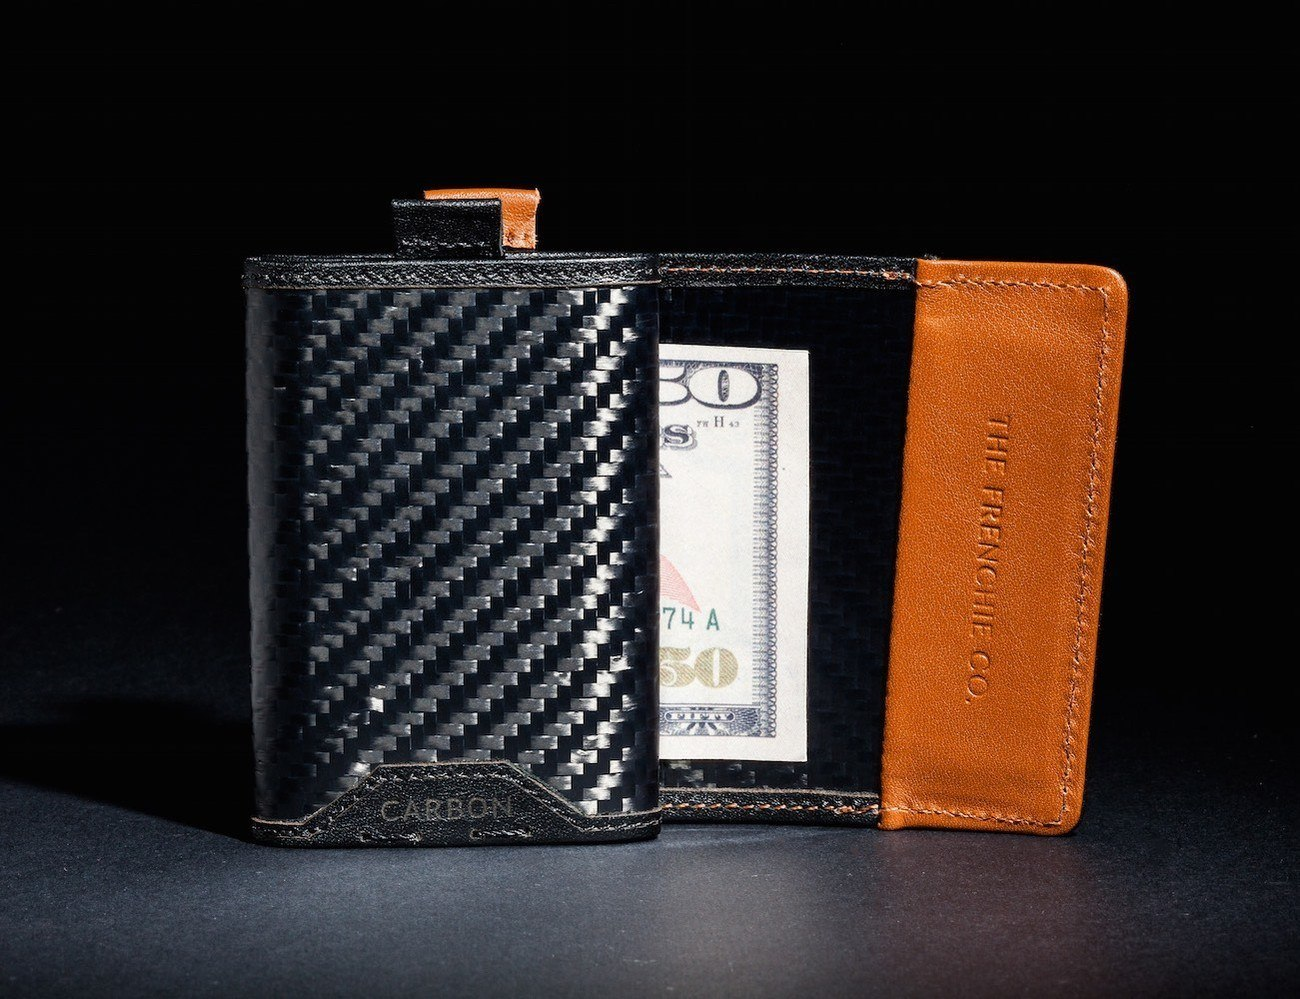 The Speed Wallet Lets You Access Your Cards Quickly